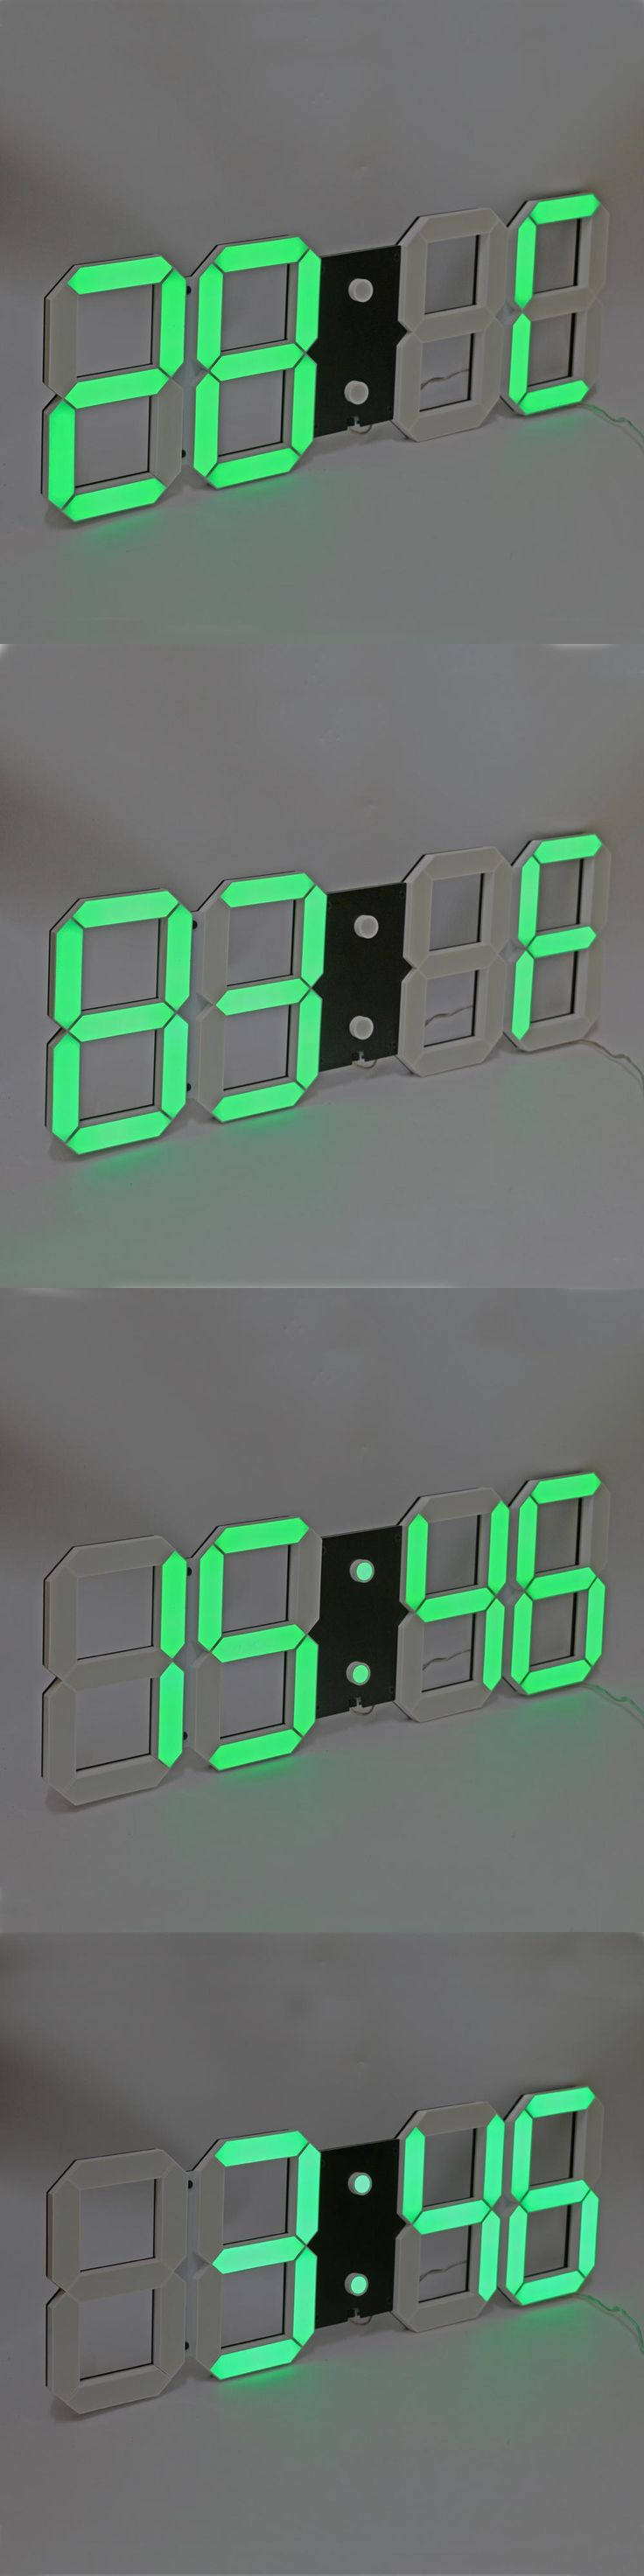 Best 25 led wall clock ideas on pinterest boy dorm rooms cool 3d digital led wall clock large countdown count up timer with remote control support alarm temperature amipublicfo Image collections